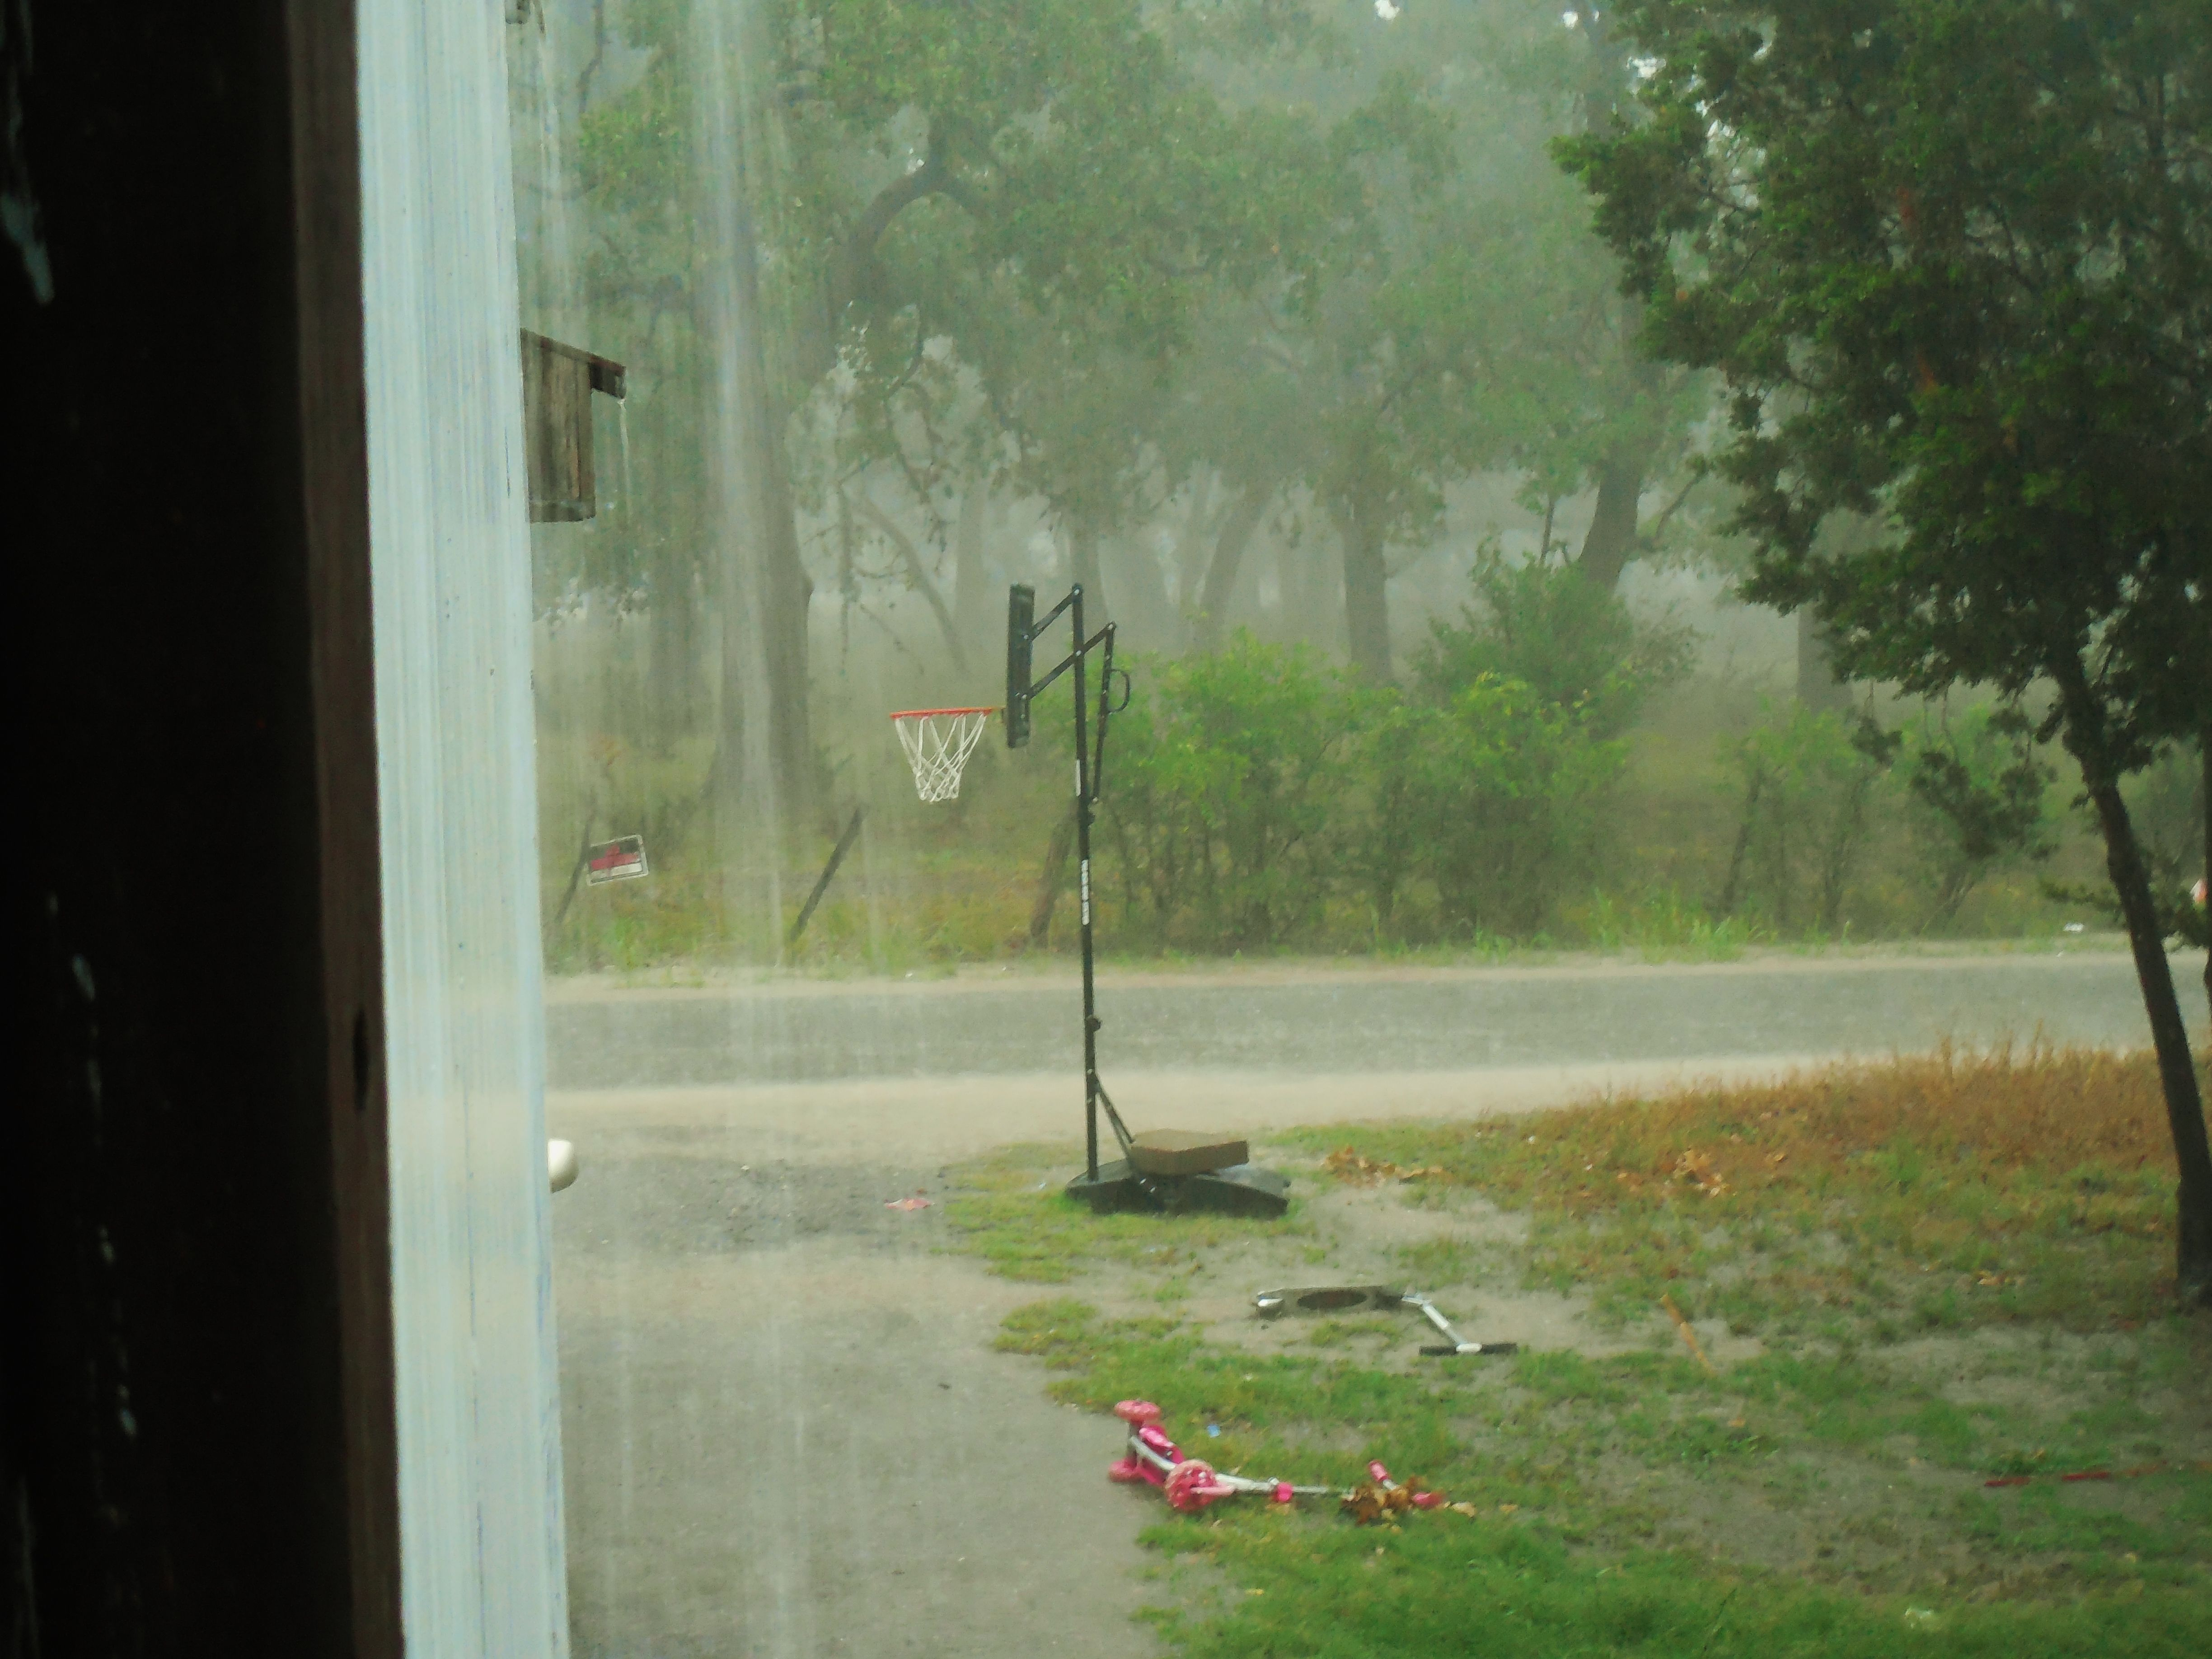 Sweet Lord I love rain SO very much. It's just been so Long since we've seen any. No one was watching T.V. we all watched the rain instead feeling excited and Joyful. This rainstorm made us realize that our children have lived their whole lives in  drought